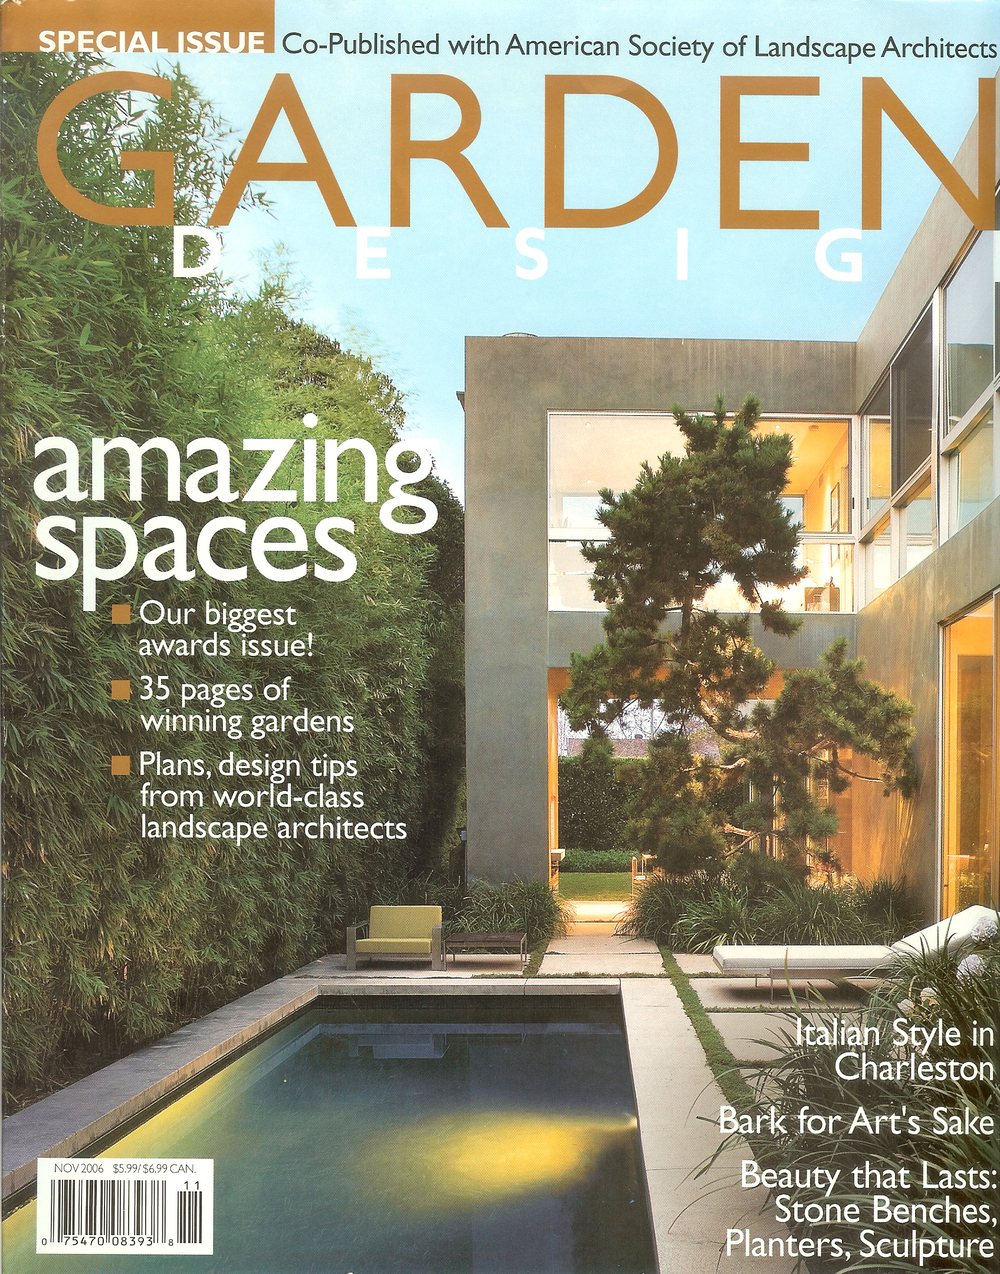 Garden Design cover - Dec 2007.jpg